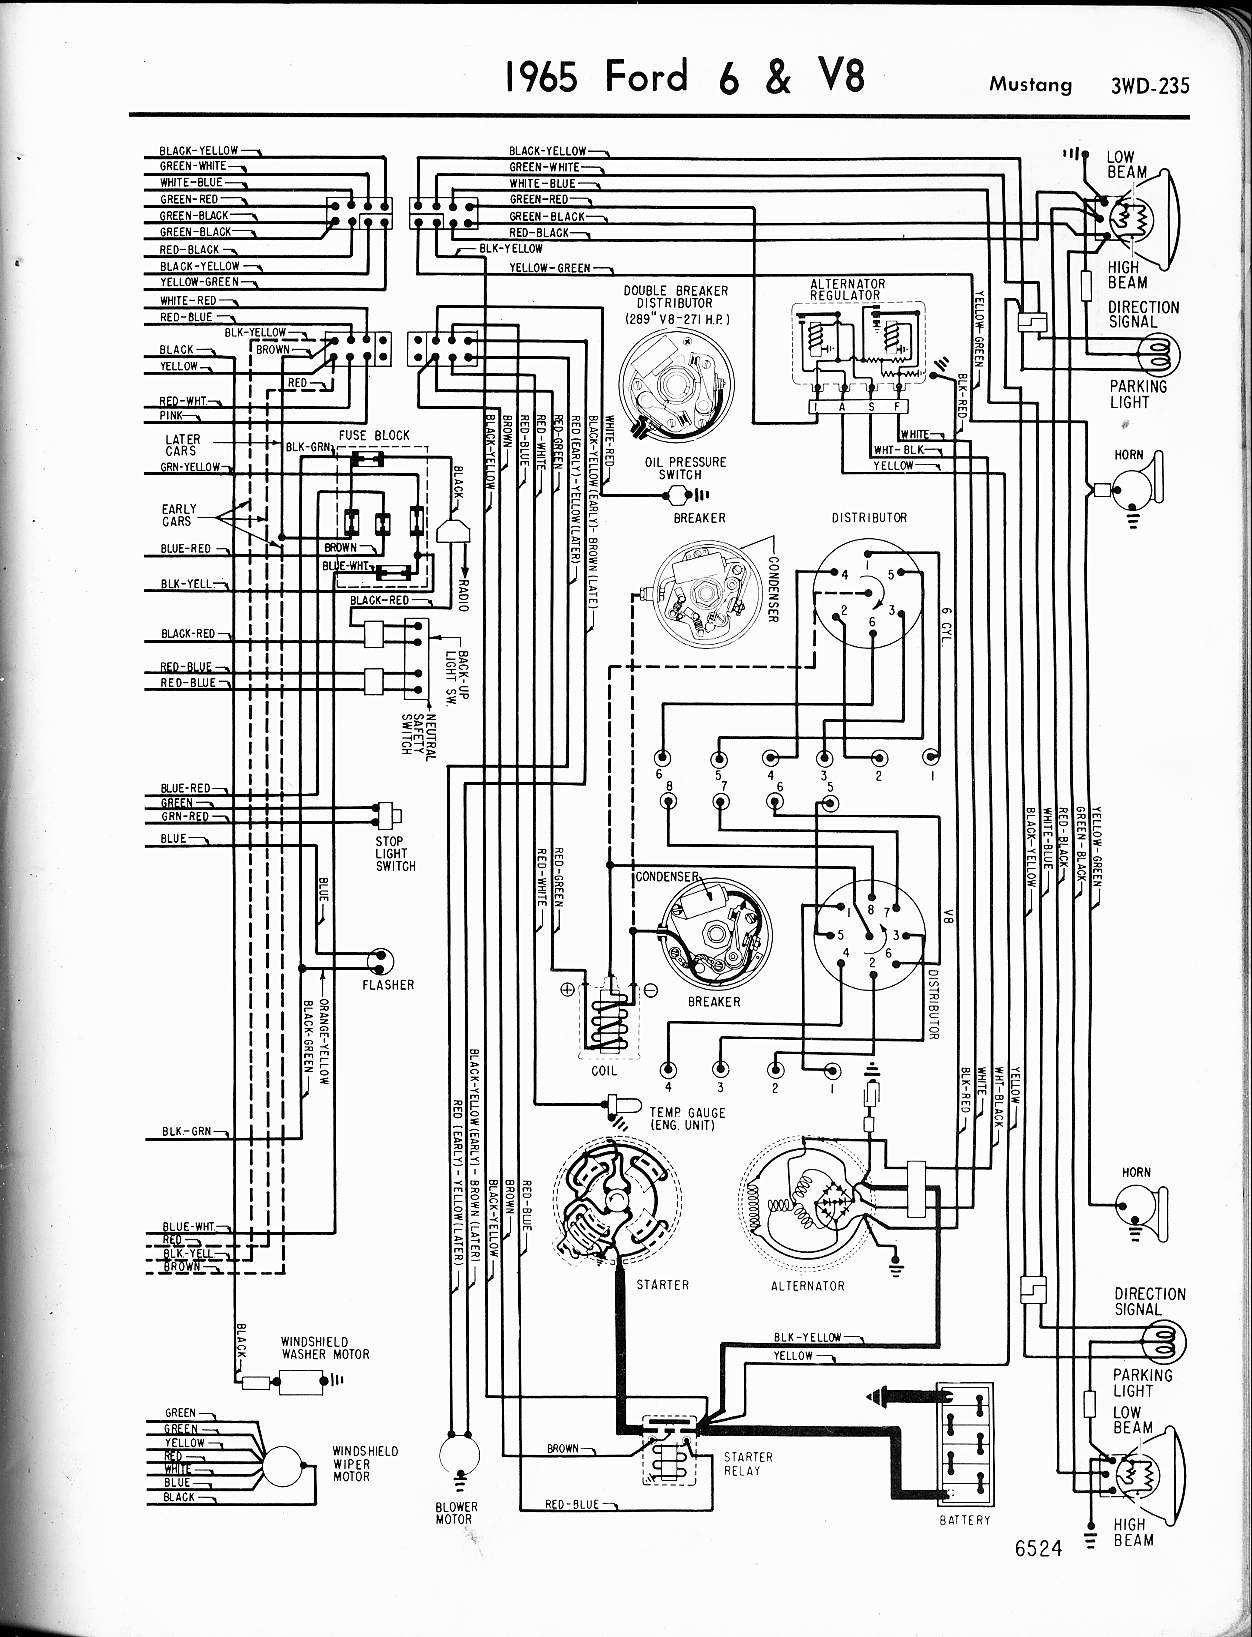 1965_mustang_wiring_2 ford diagrams wiring diagram for 69 mustang at gsmportal.co